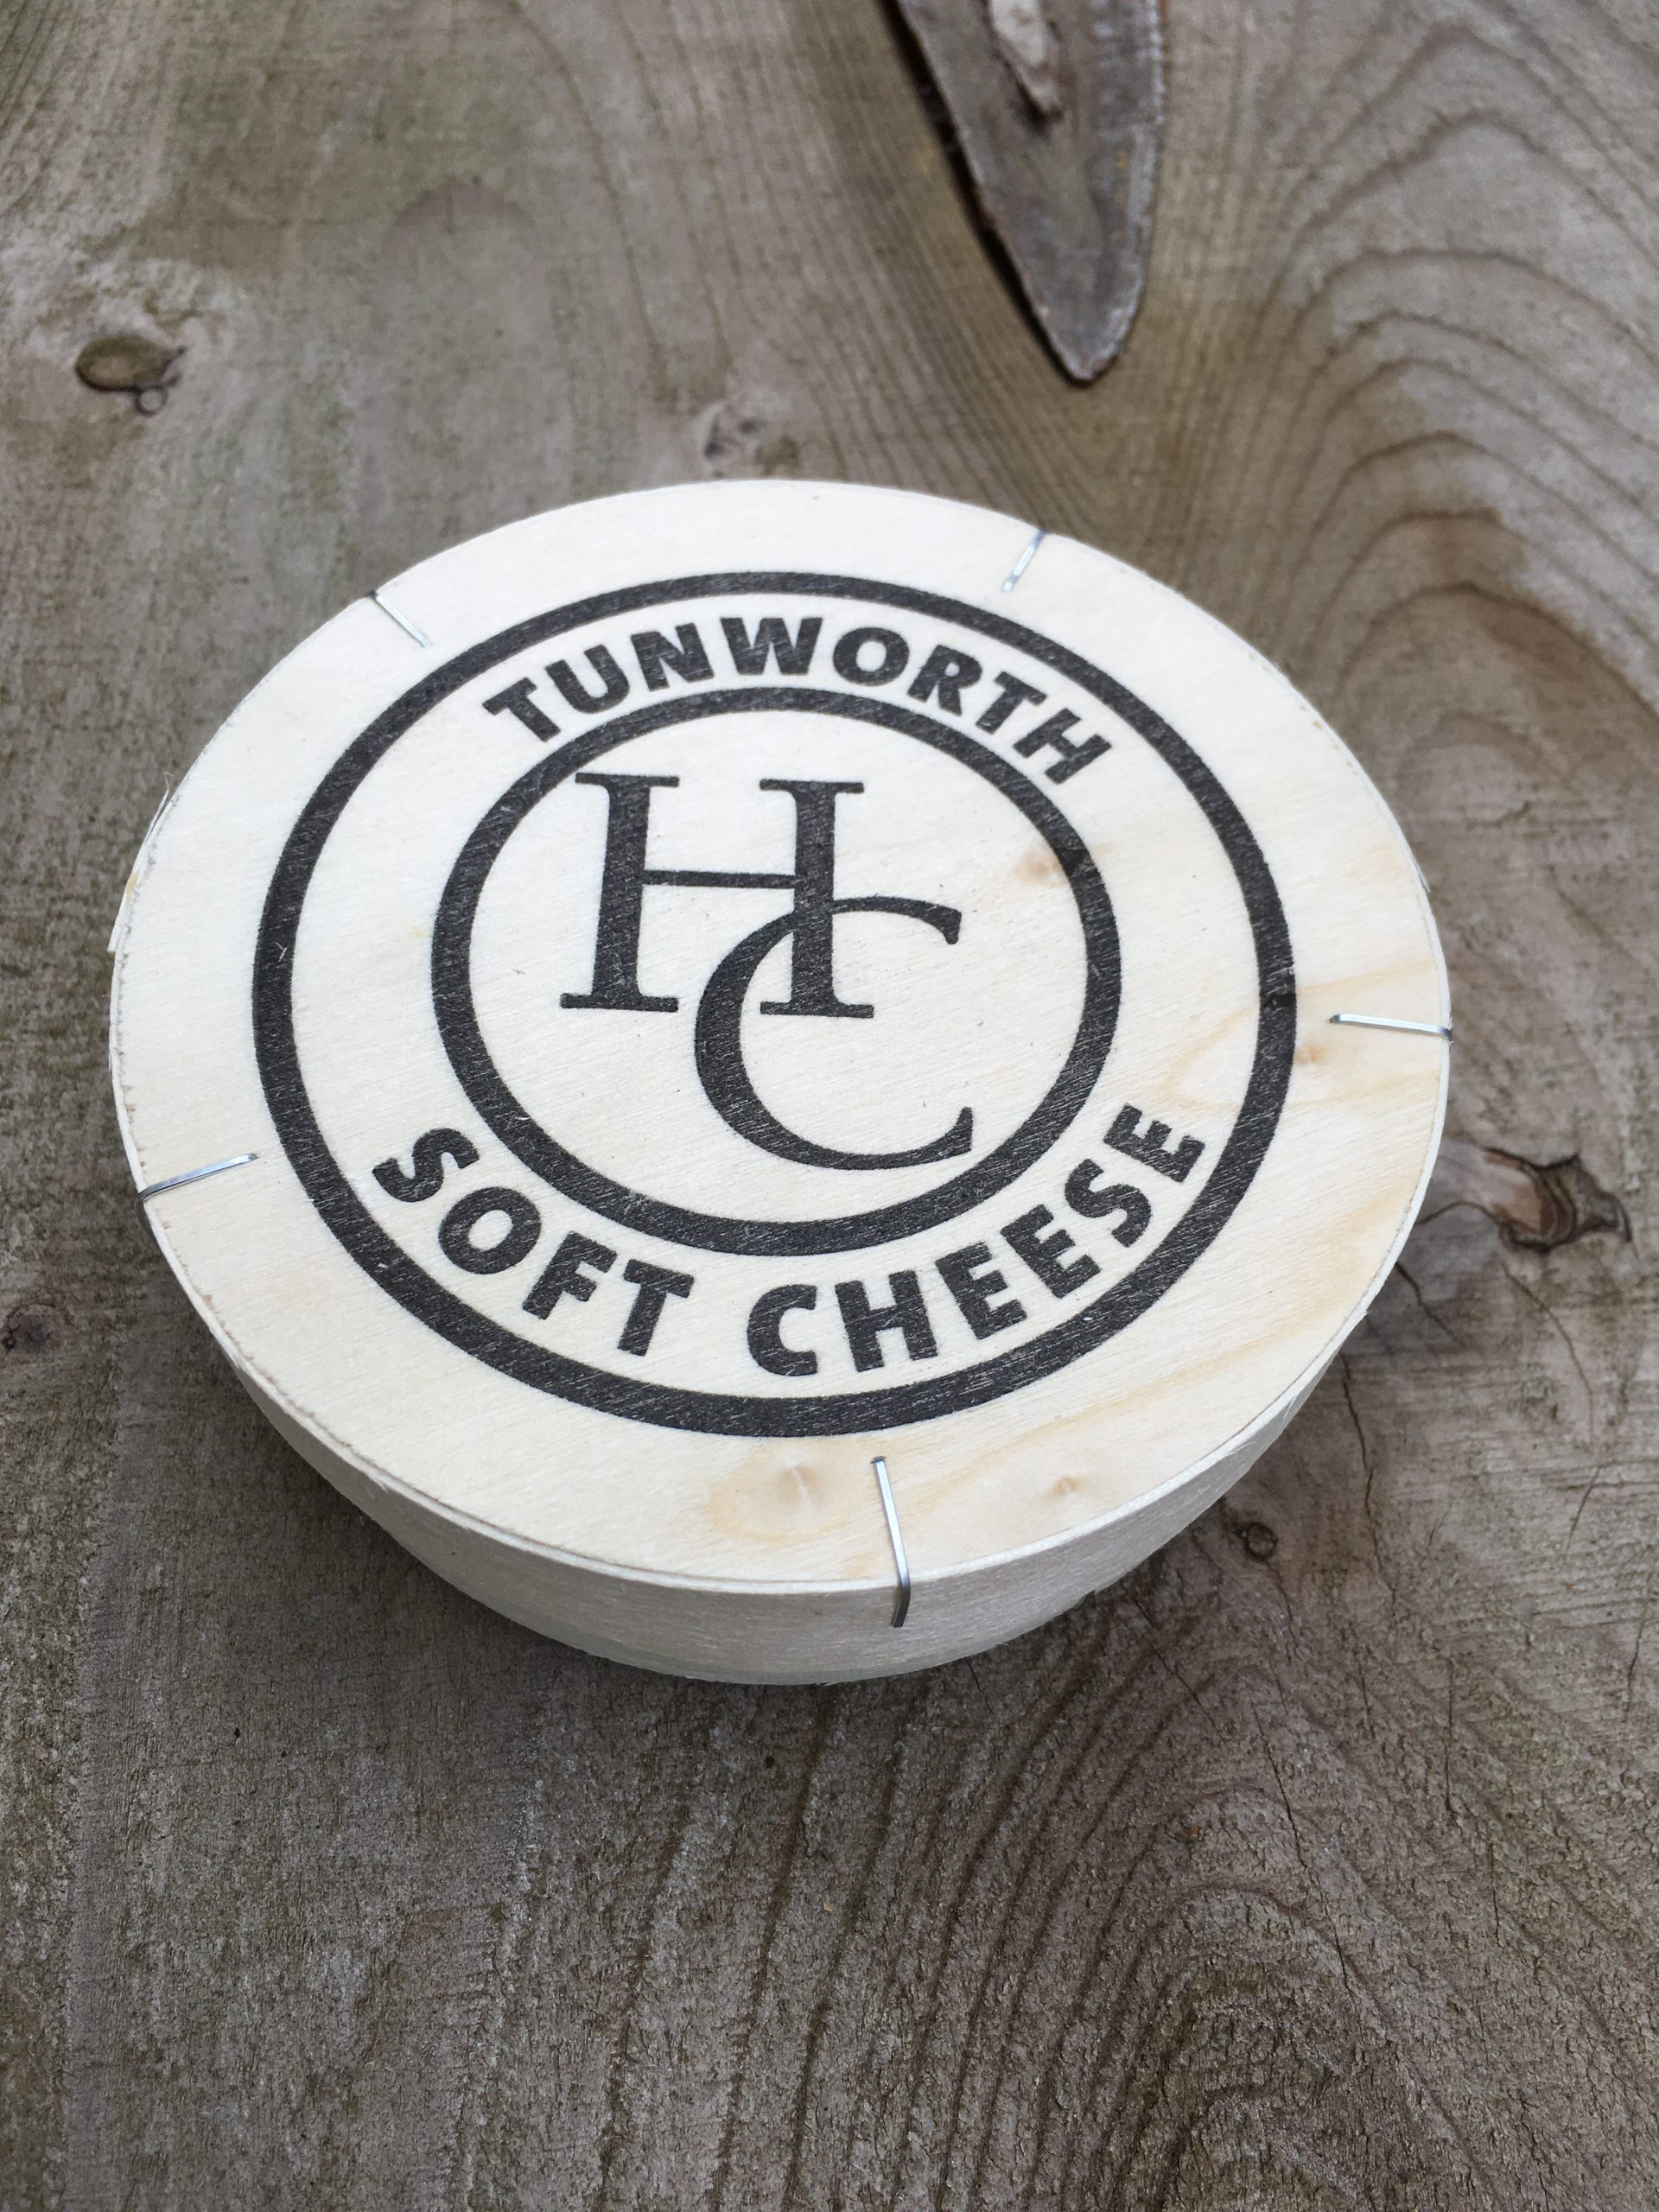 Tunworth Cheese